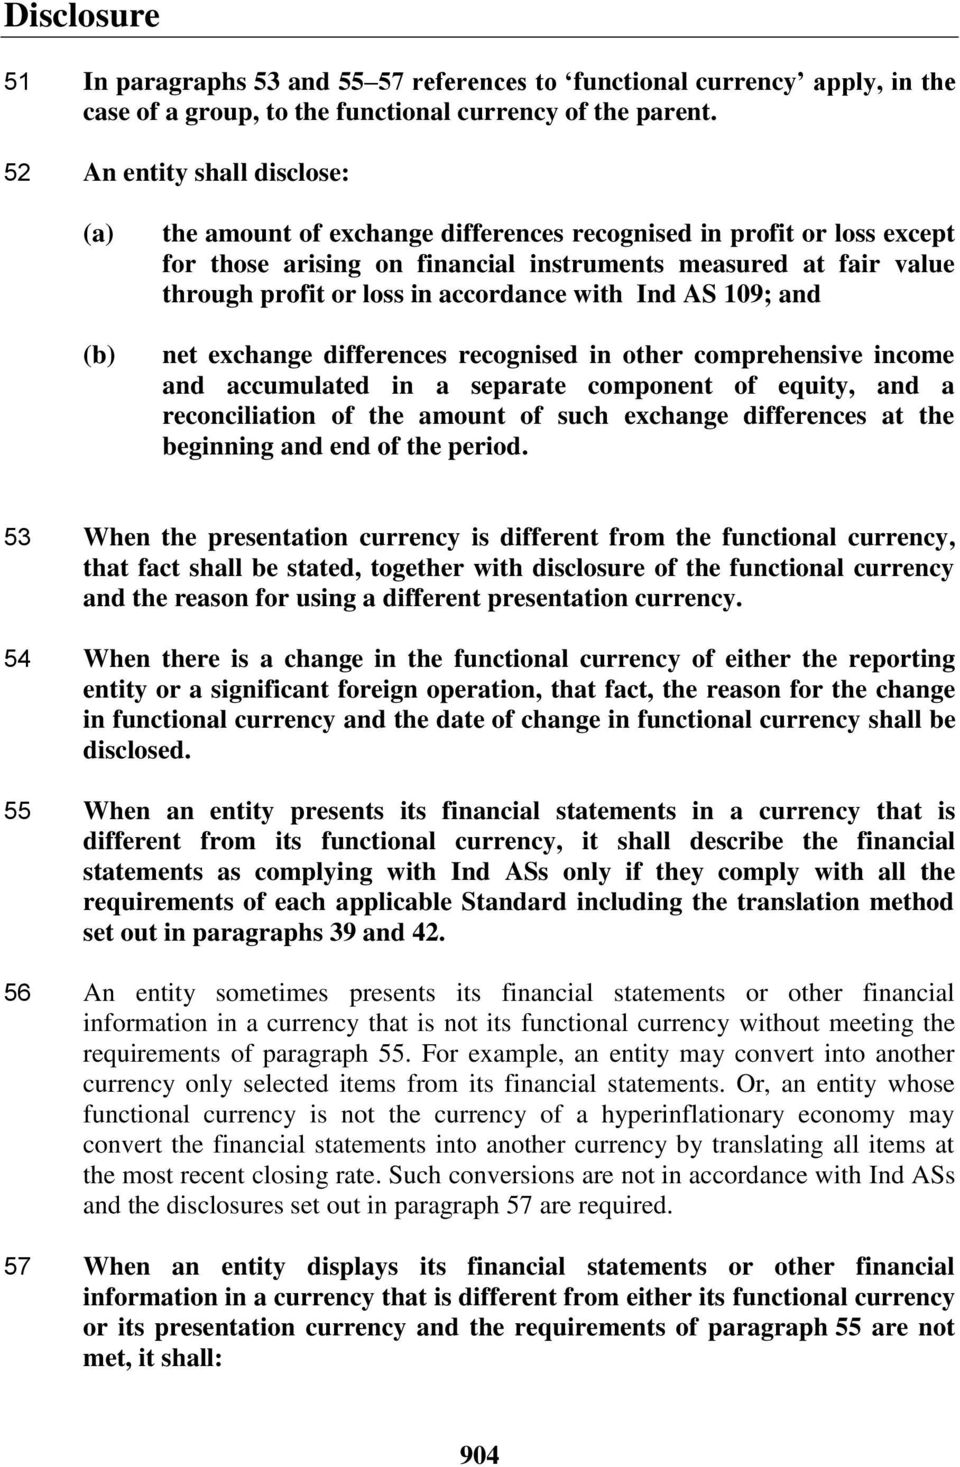 accordance with Ind AS 109; and net exchange differences recognised in other comprehensive income and accumulated in a separate component of equity, and a reconciliation of the amount of such